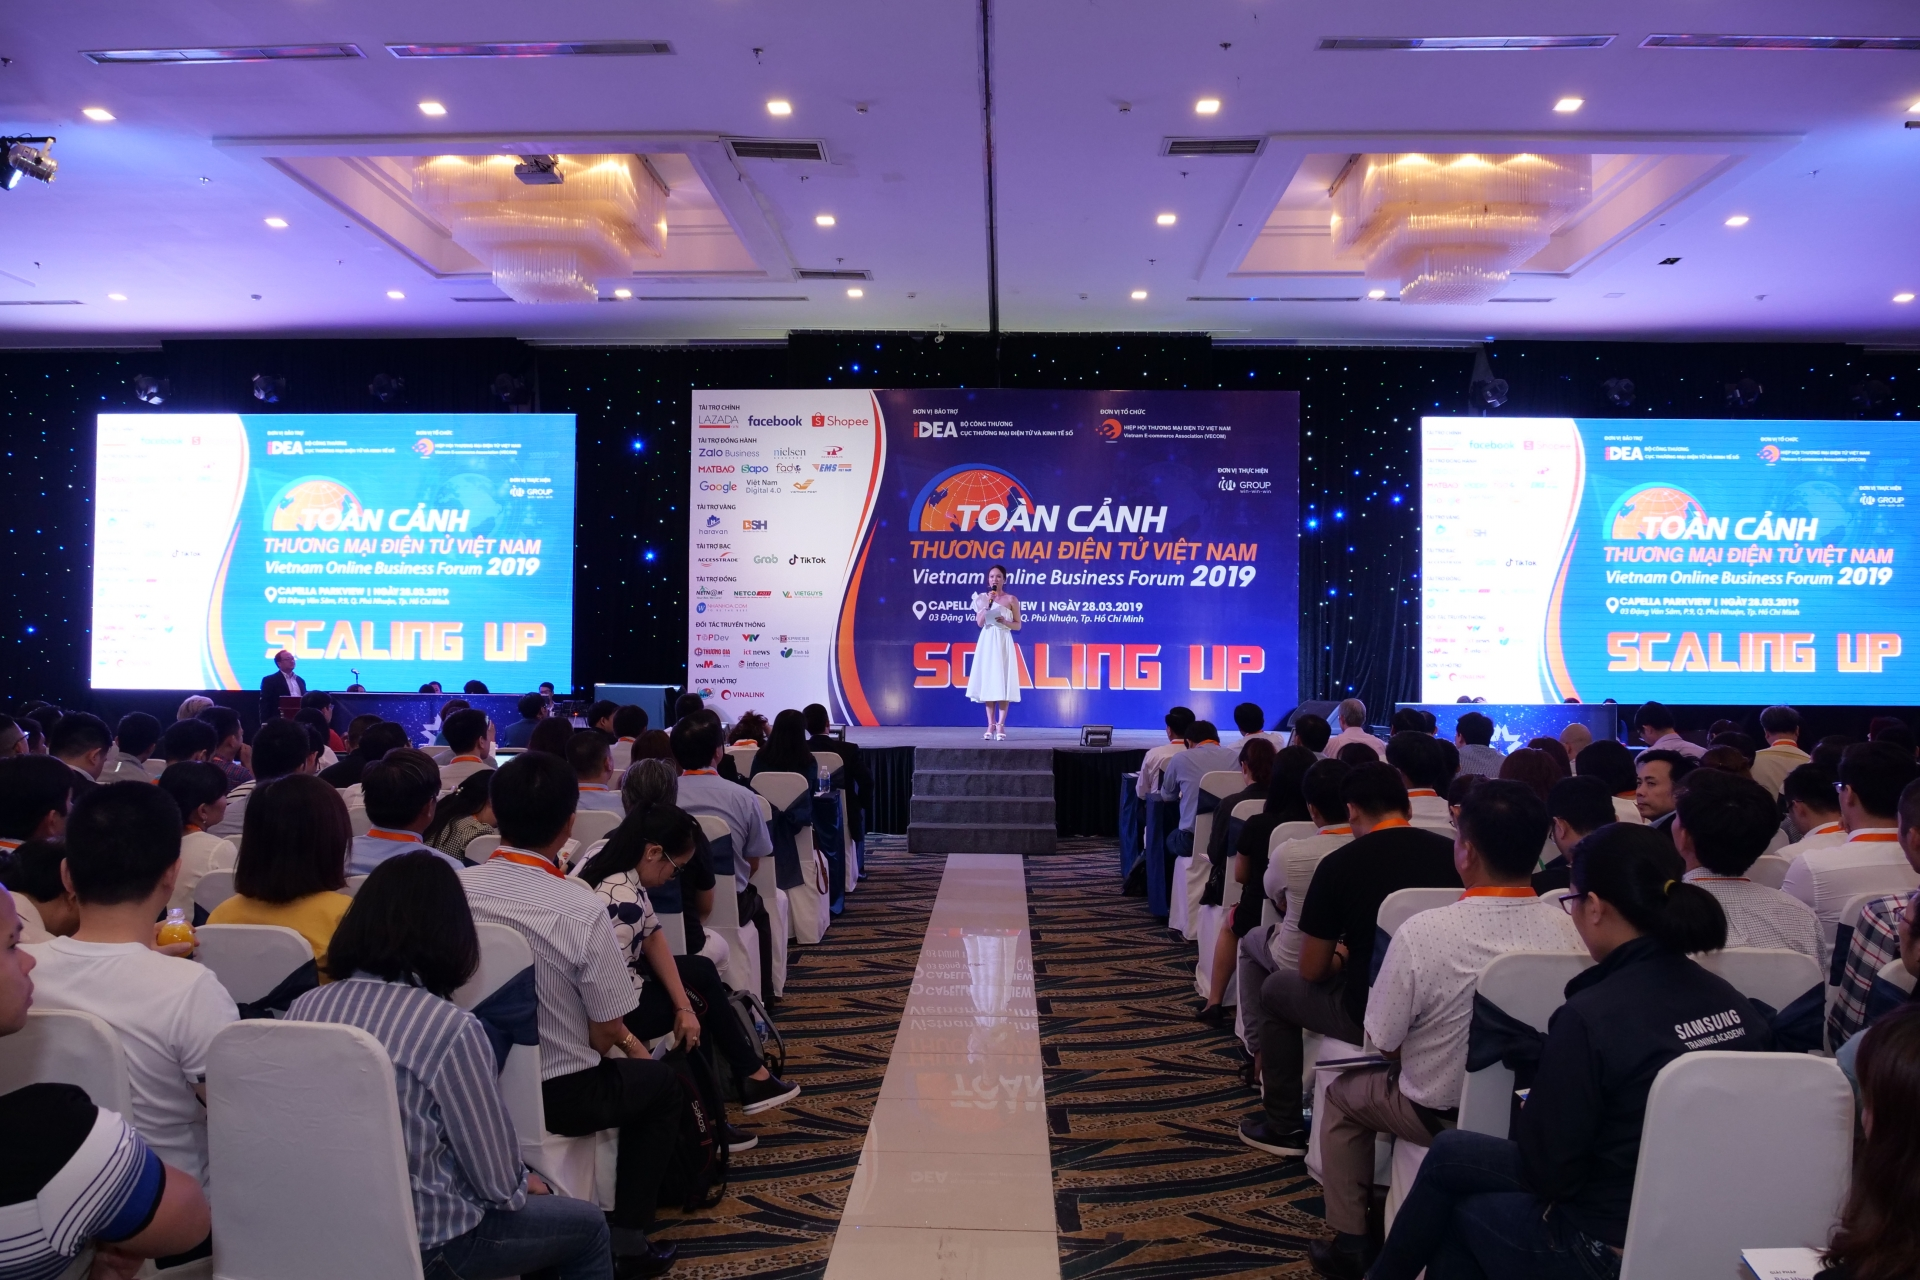 Vietnam's first-ever Digital Economy Measurement Project launched